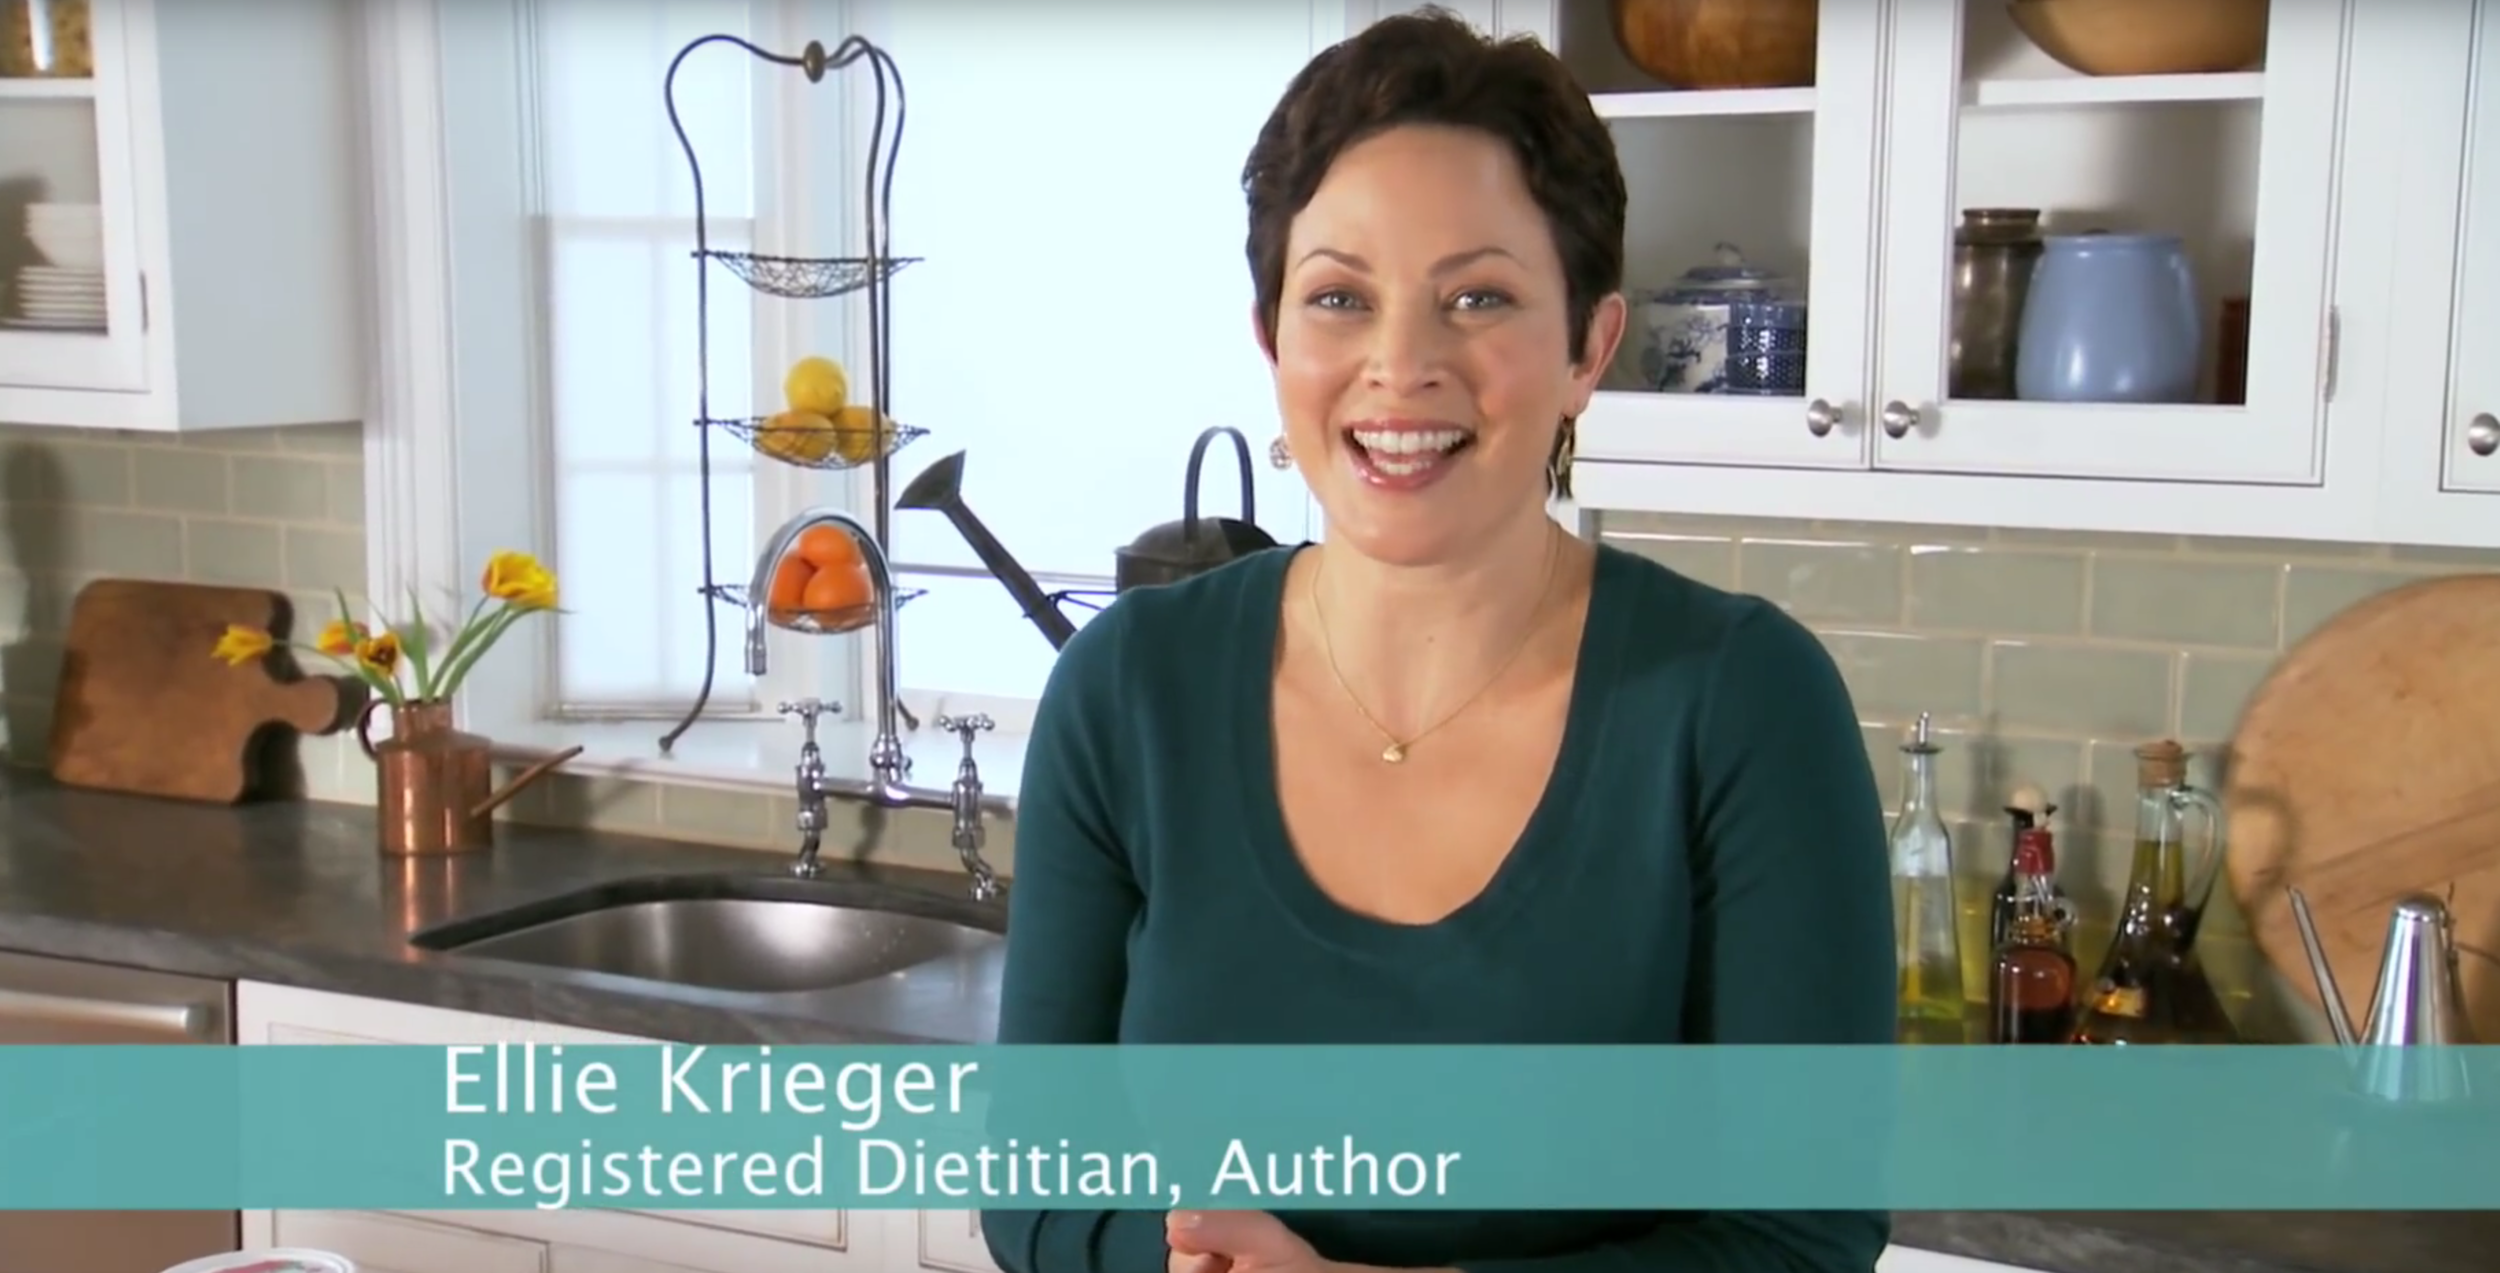 Ellie Krieger's Monthly Meal Makeovers